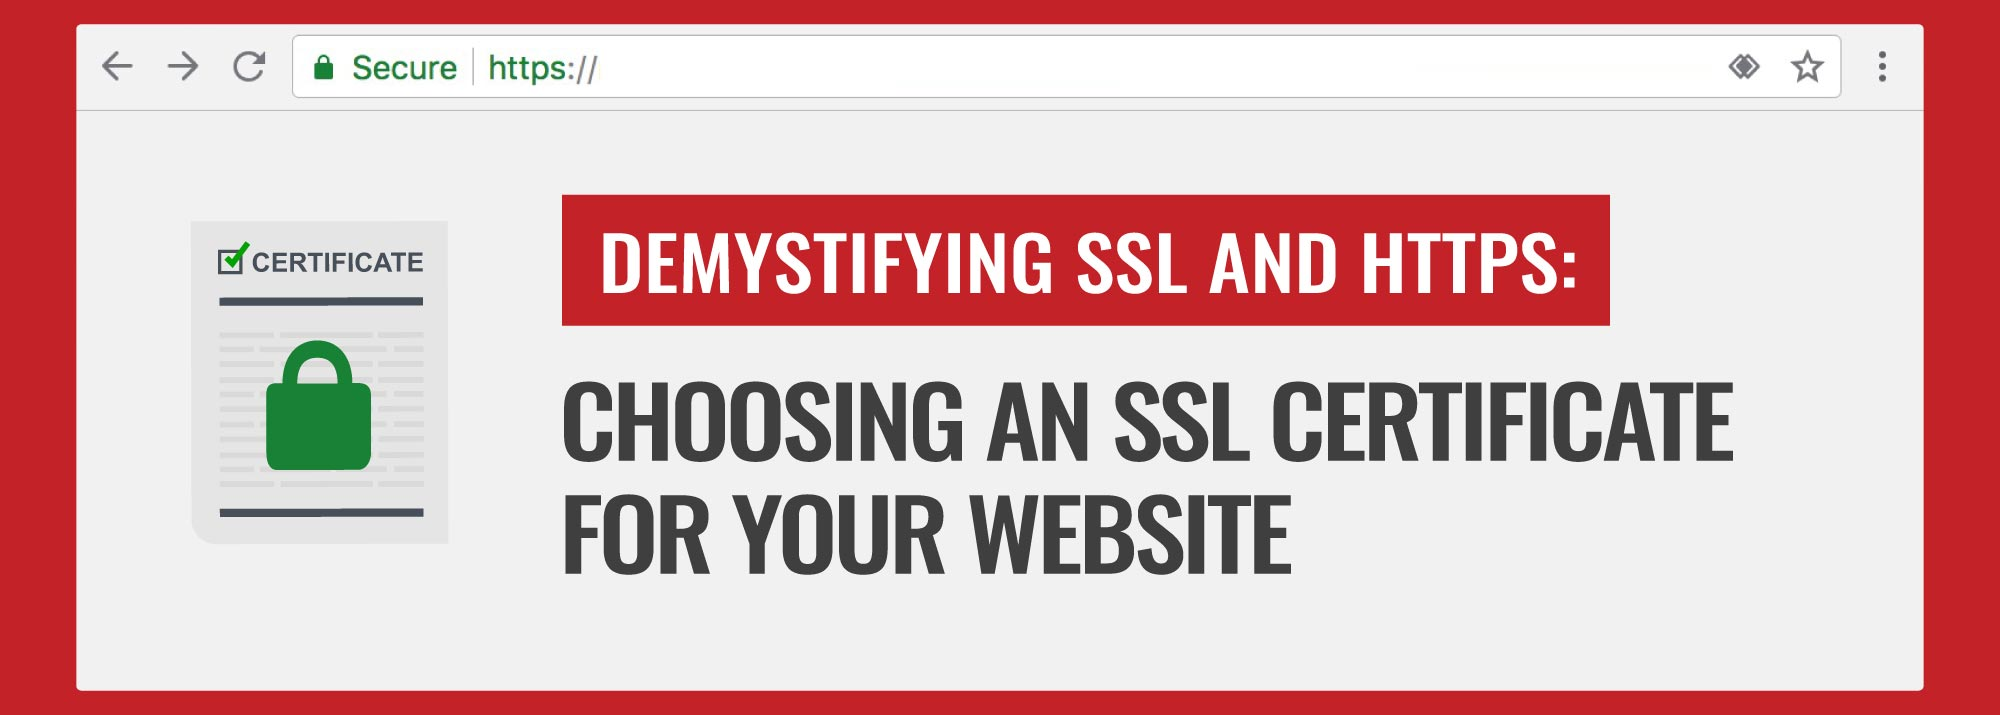 Choosing An Ssl Certificate For Your Website The Sitelock Blog